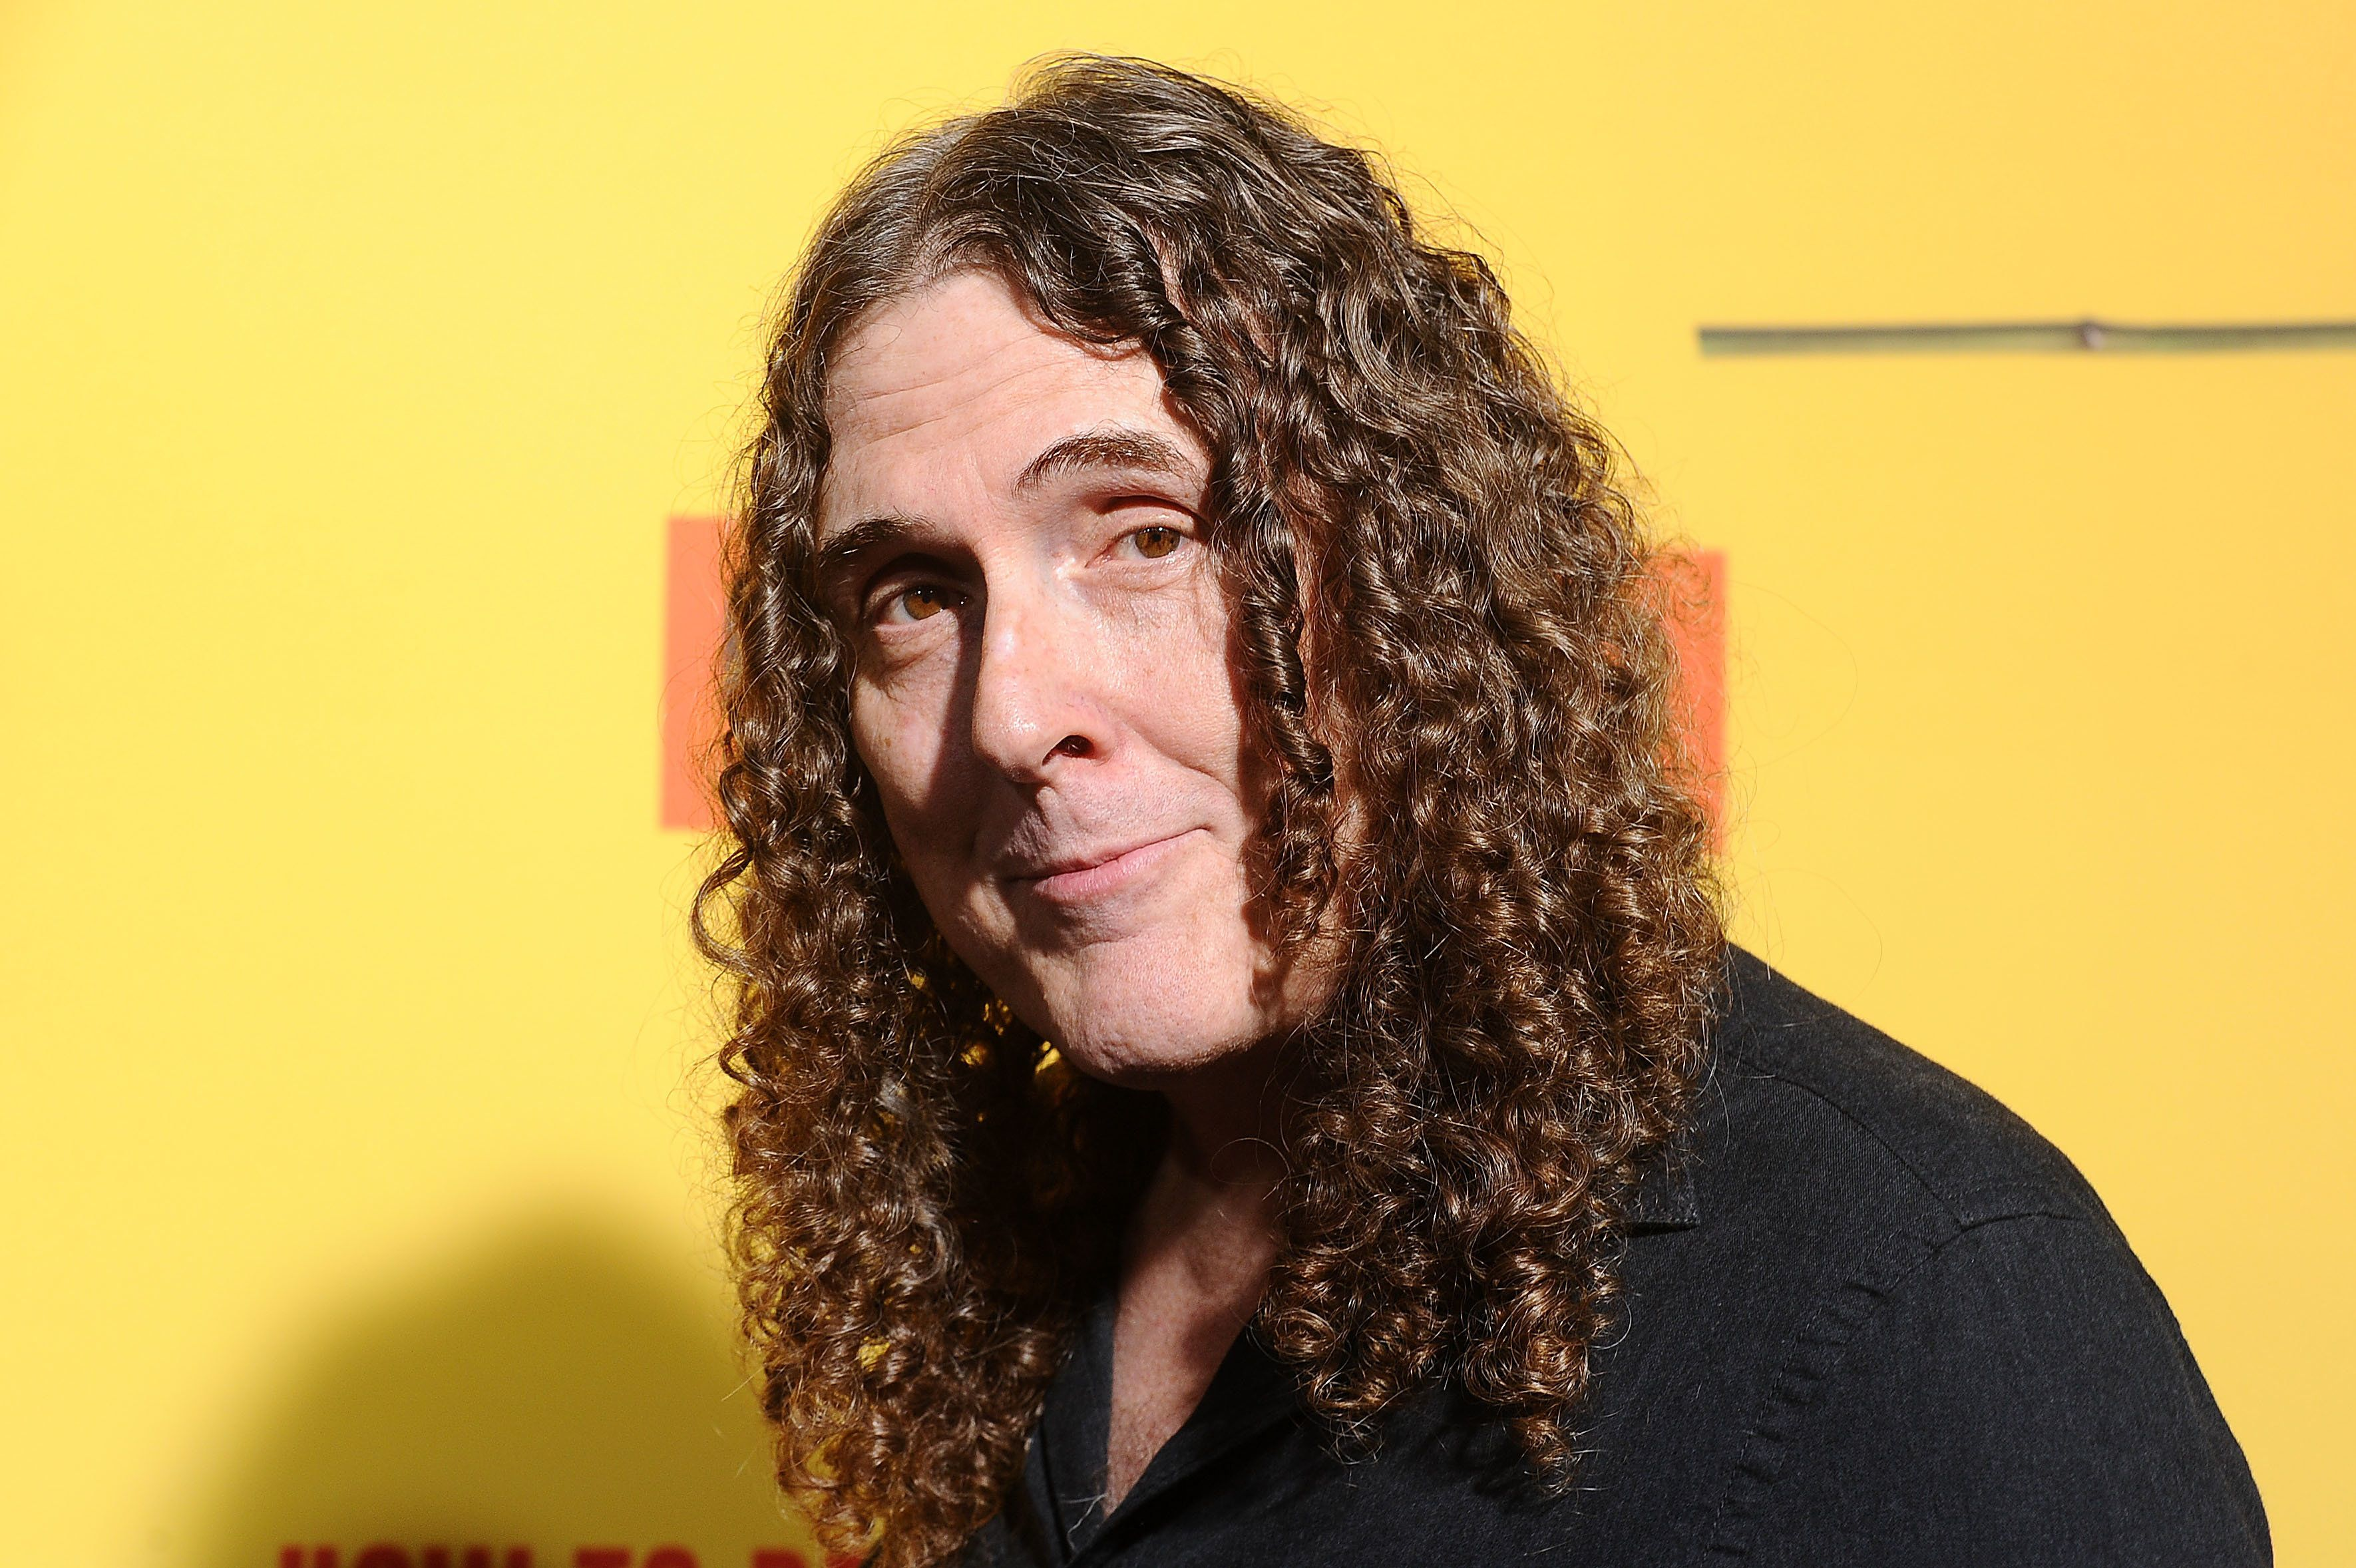 HOLLYWOOD, CA - APRIL 26:  Weird Al Yankovic attends the premiere of 'How to Be a Latin Lover' at ArcLight Cinemas Cinerama Dome on April 26, 2017 in Hollywood, California.  (Photo by Jason LaVeris/FilmMagic)